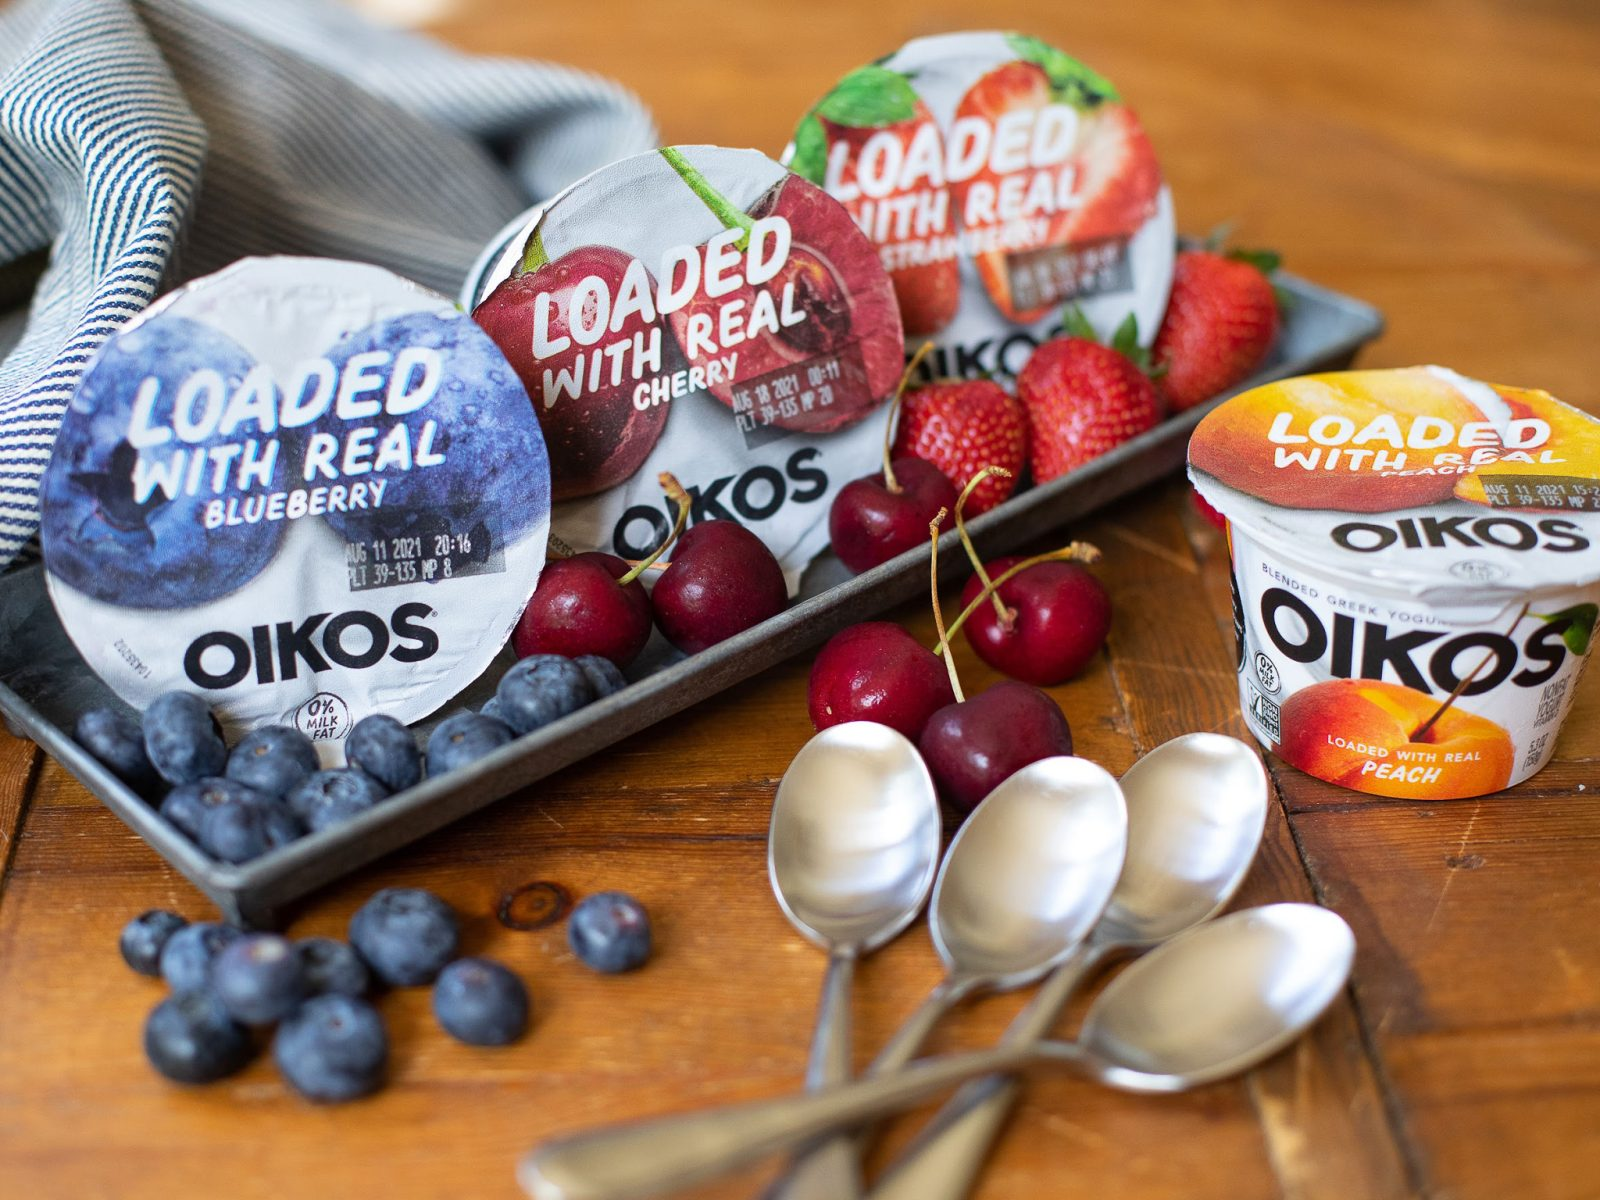 Okios Blended Greek Yogurt Just 60¢ Per Cup This Week At Publix on I Heart Publix